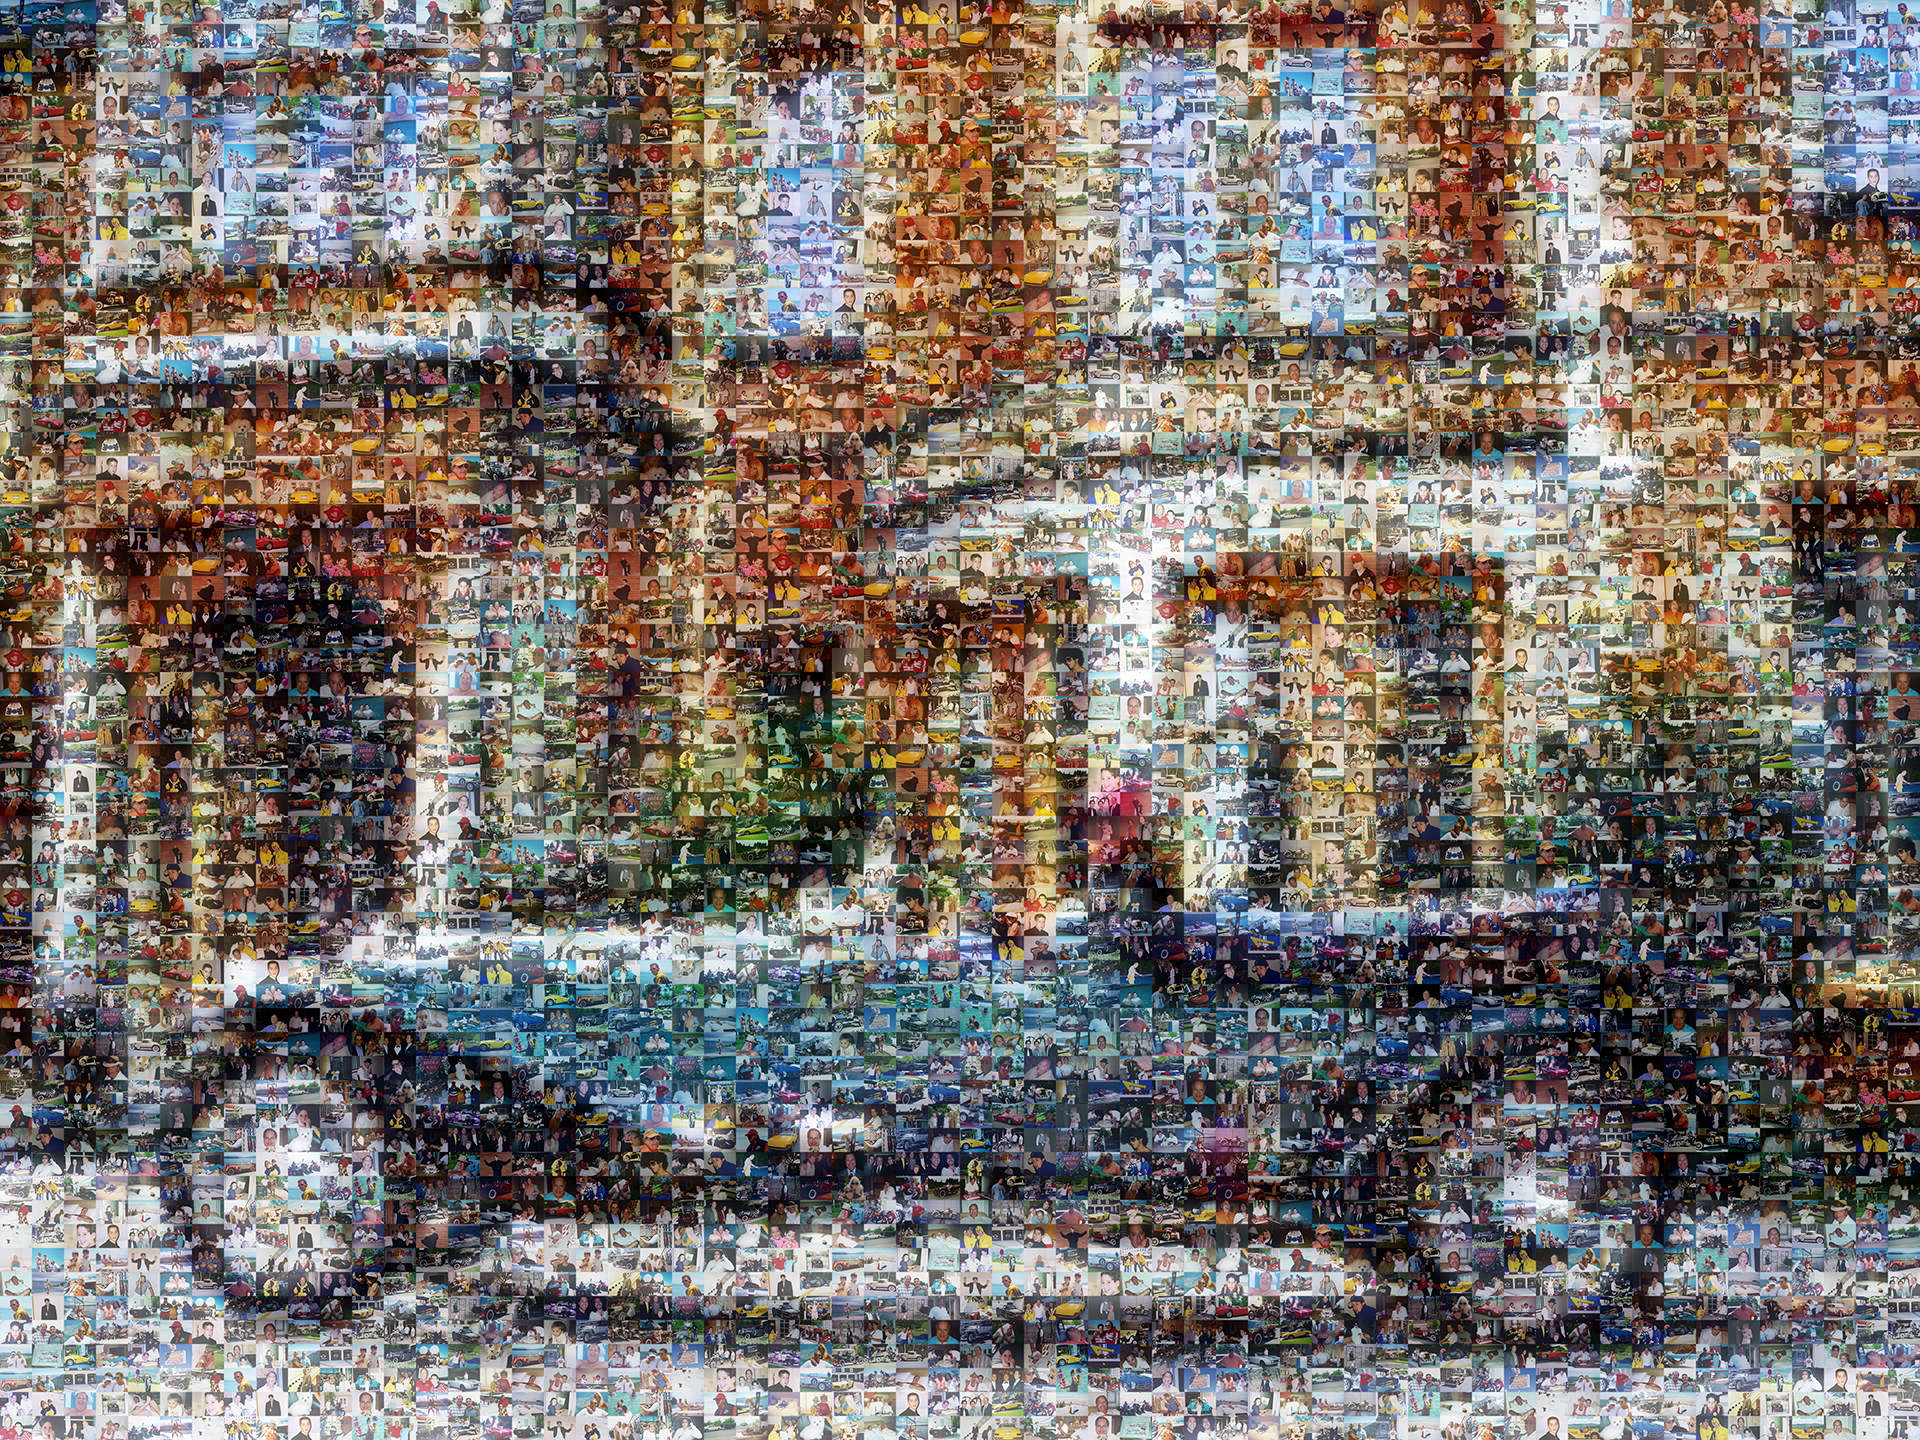 photo mosaic created using 308 family taken photos